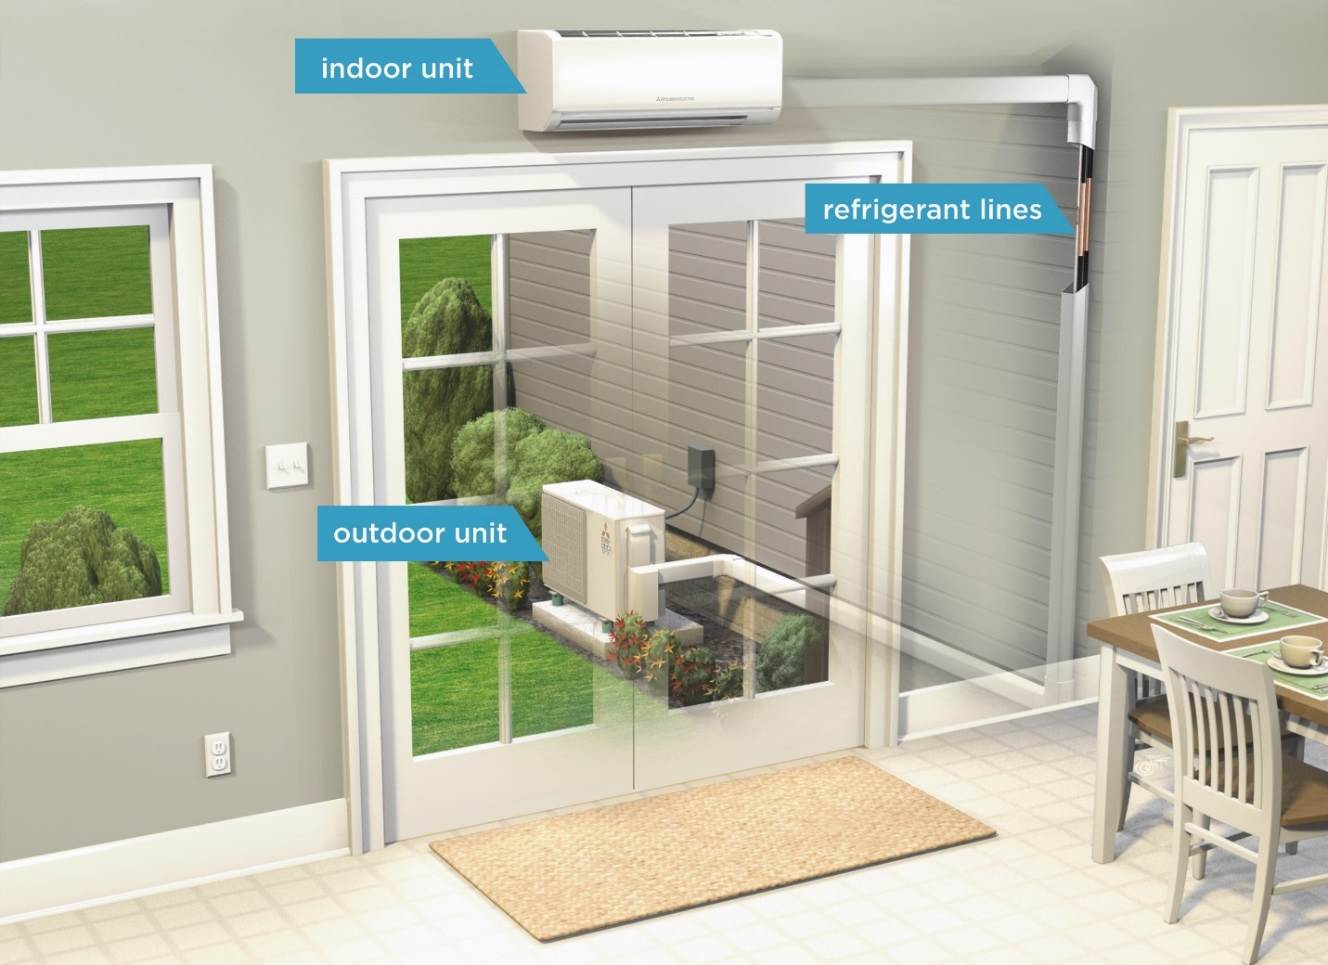 Ductless Heating Amp Cooling Mini Split Systems Energy Star